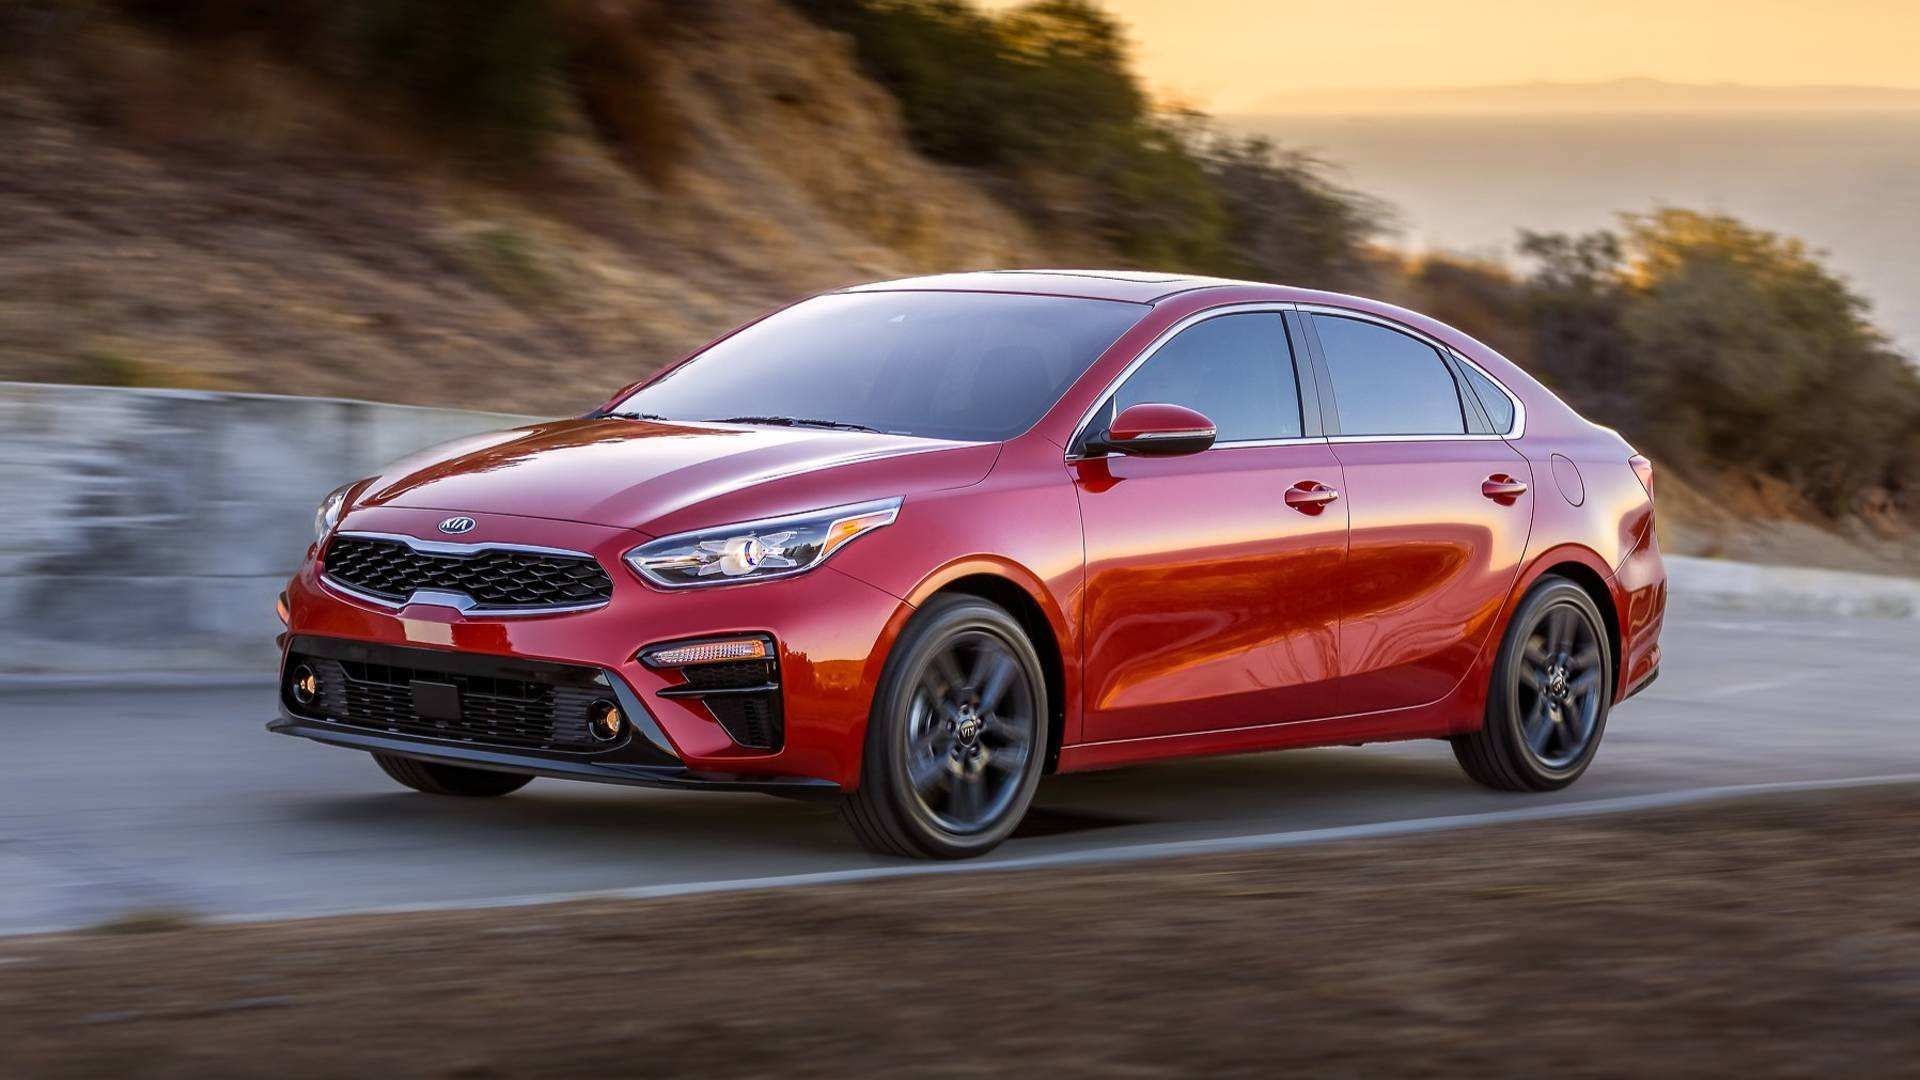 73 Best Review 2020 Kia Forte Research New with 2020 Kia Forte